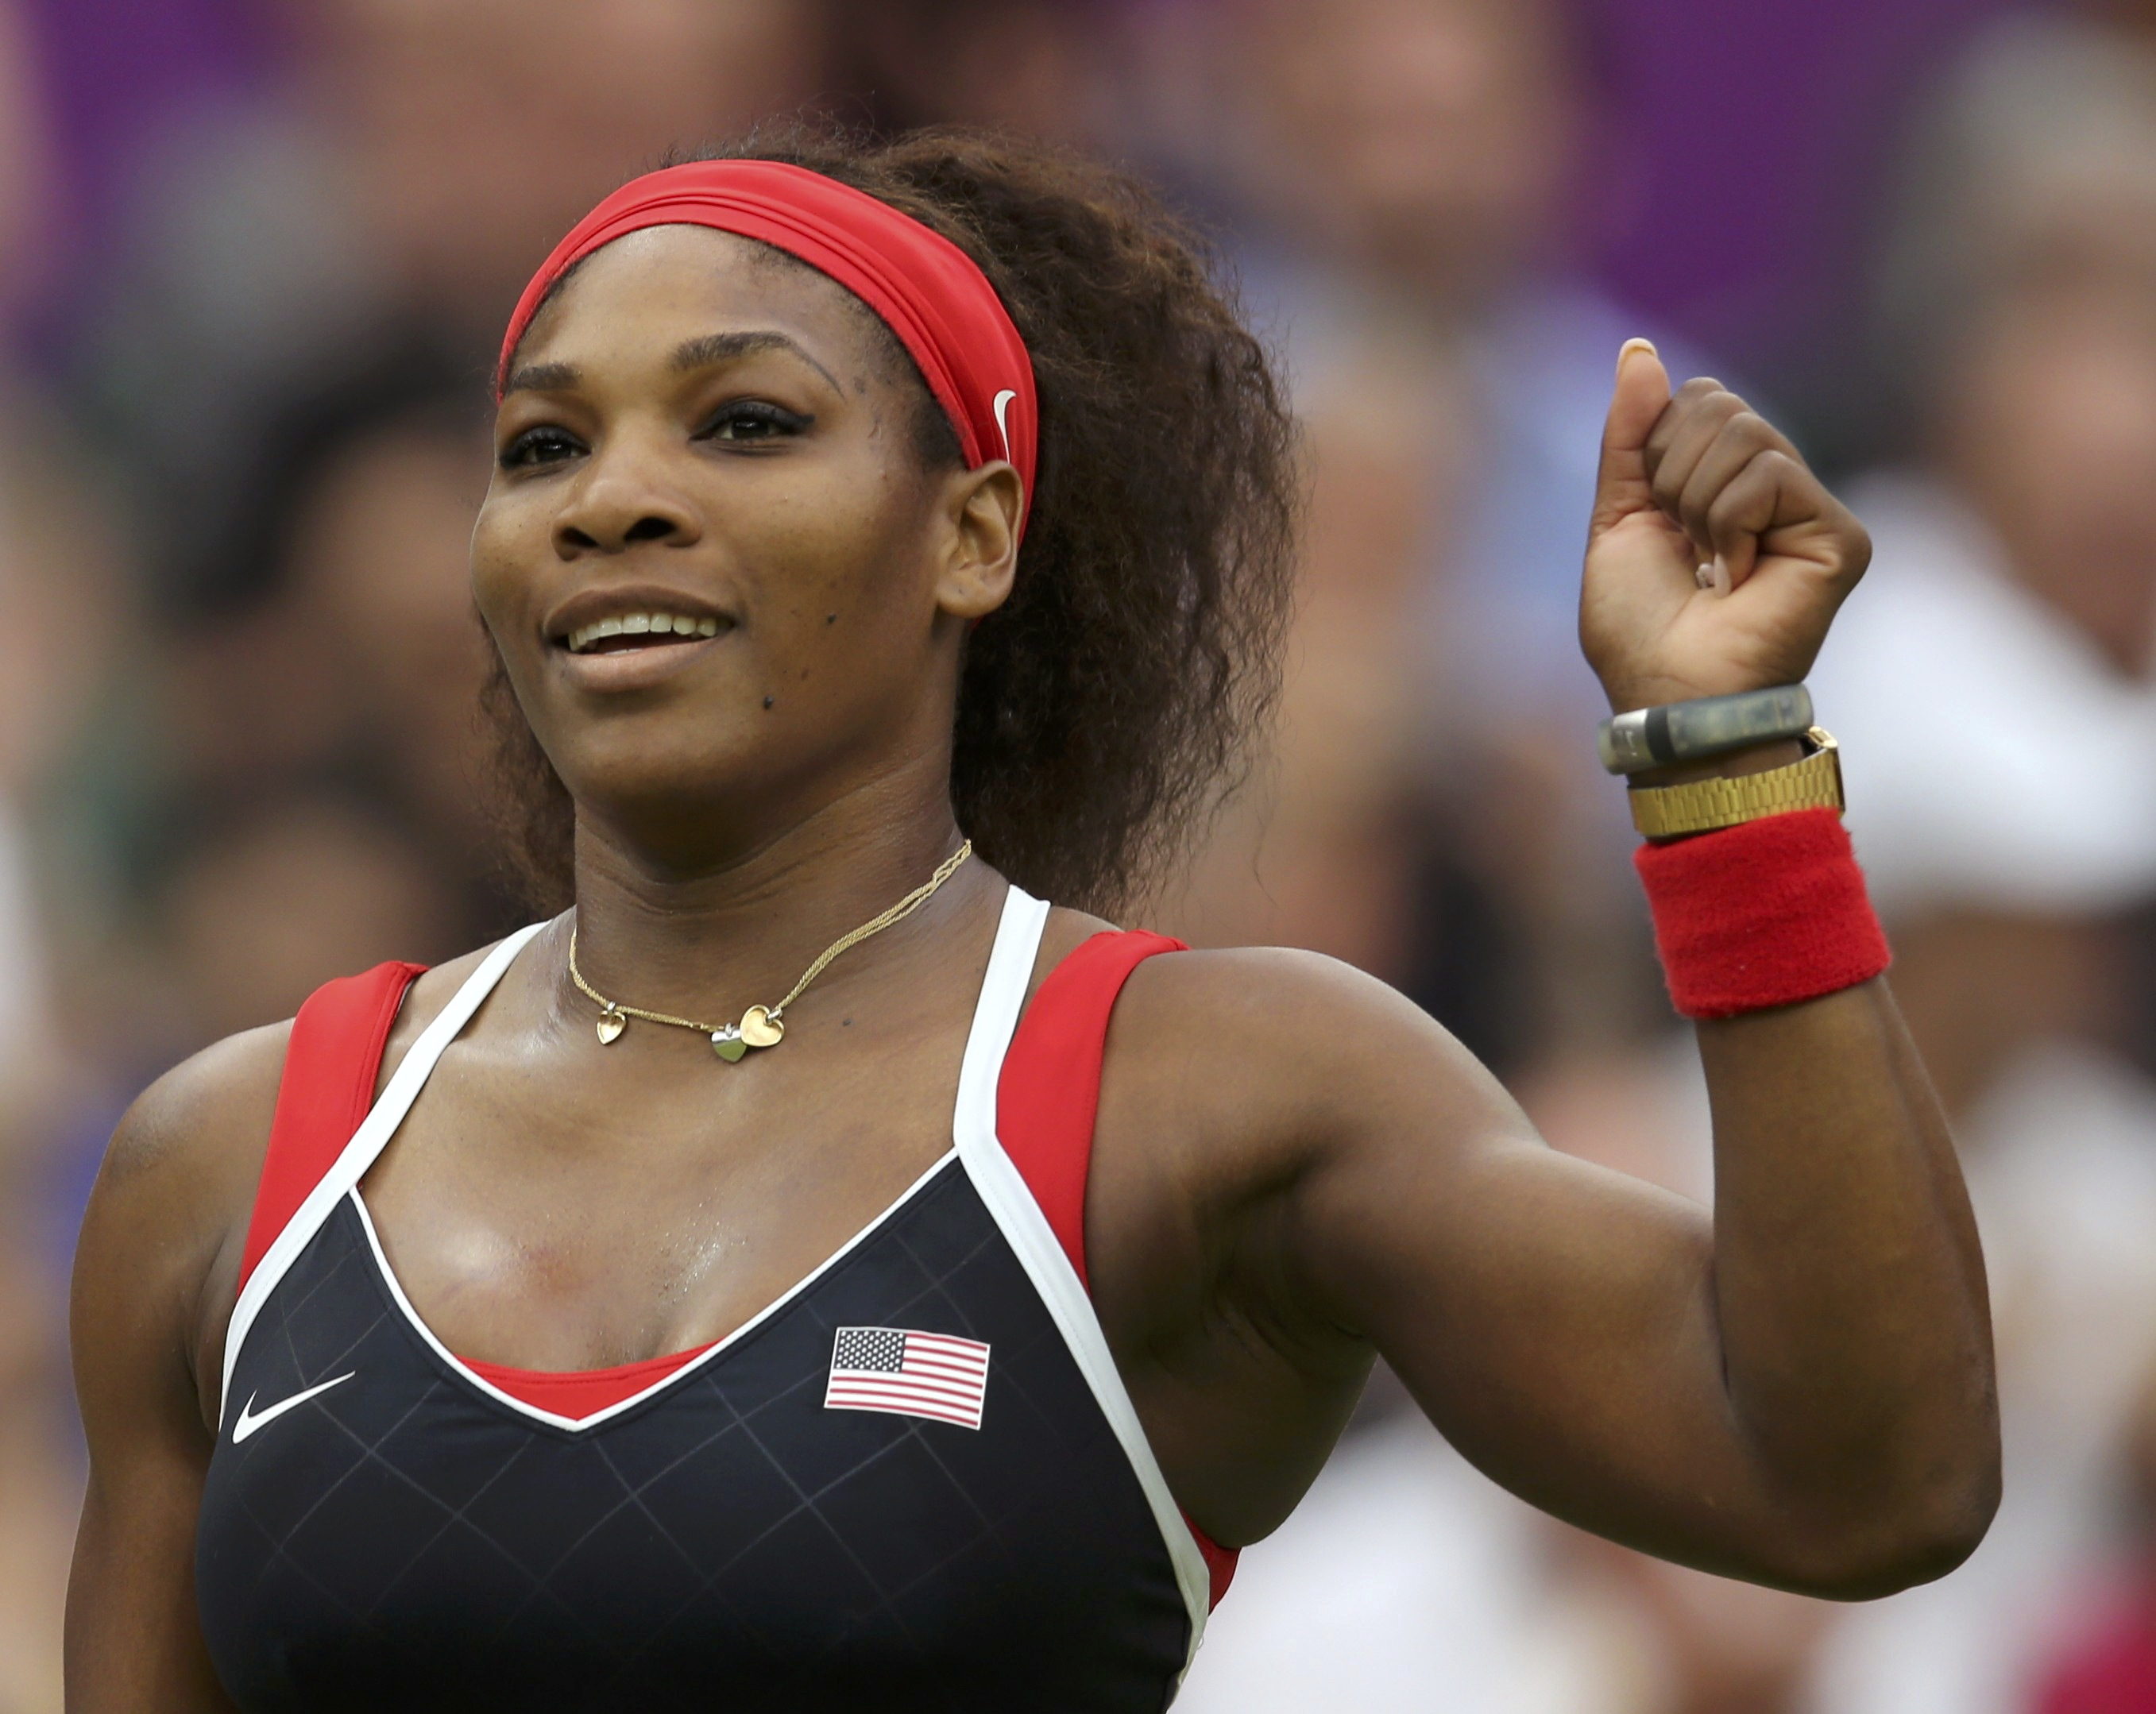 Serena Williams to Miss Rest of Season After Announcing Pregnancy